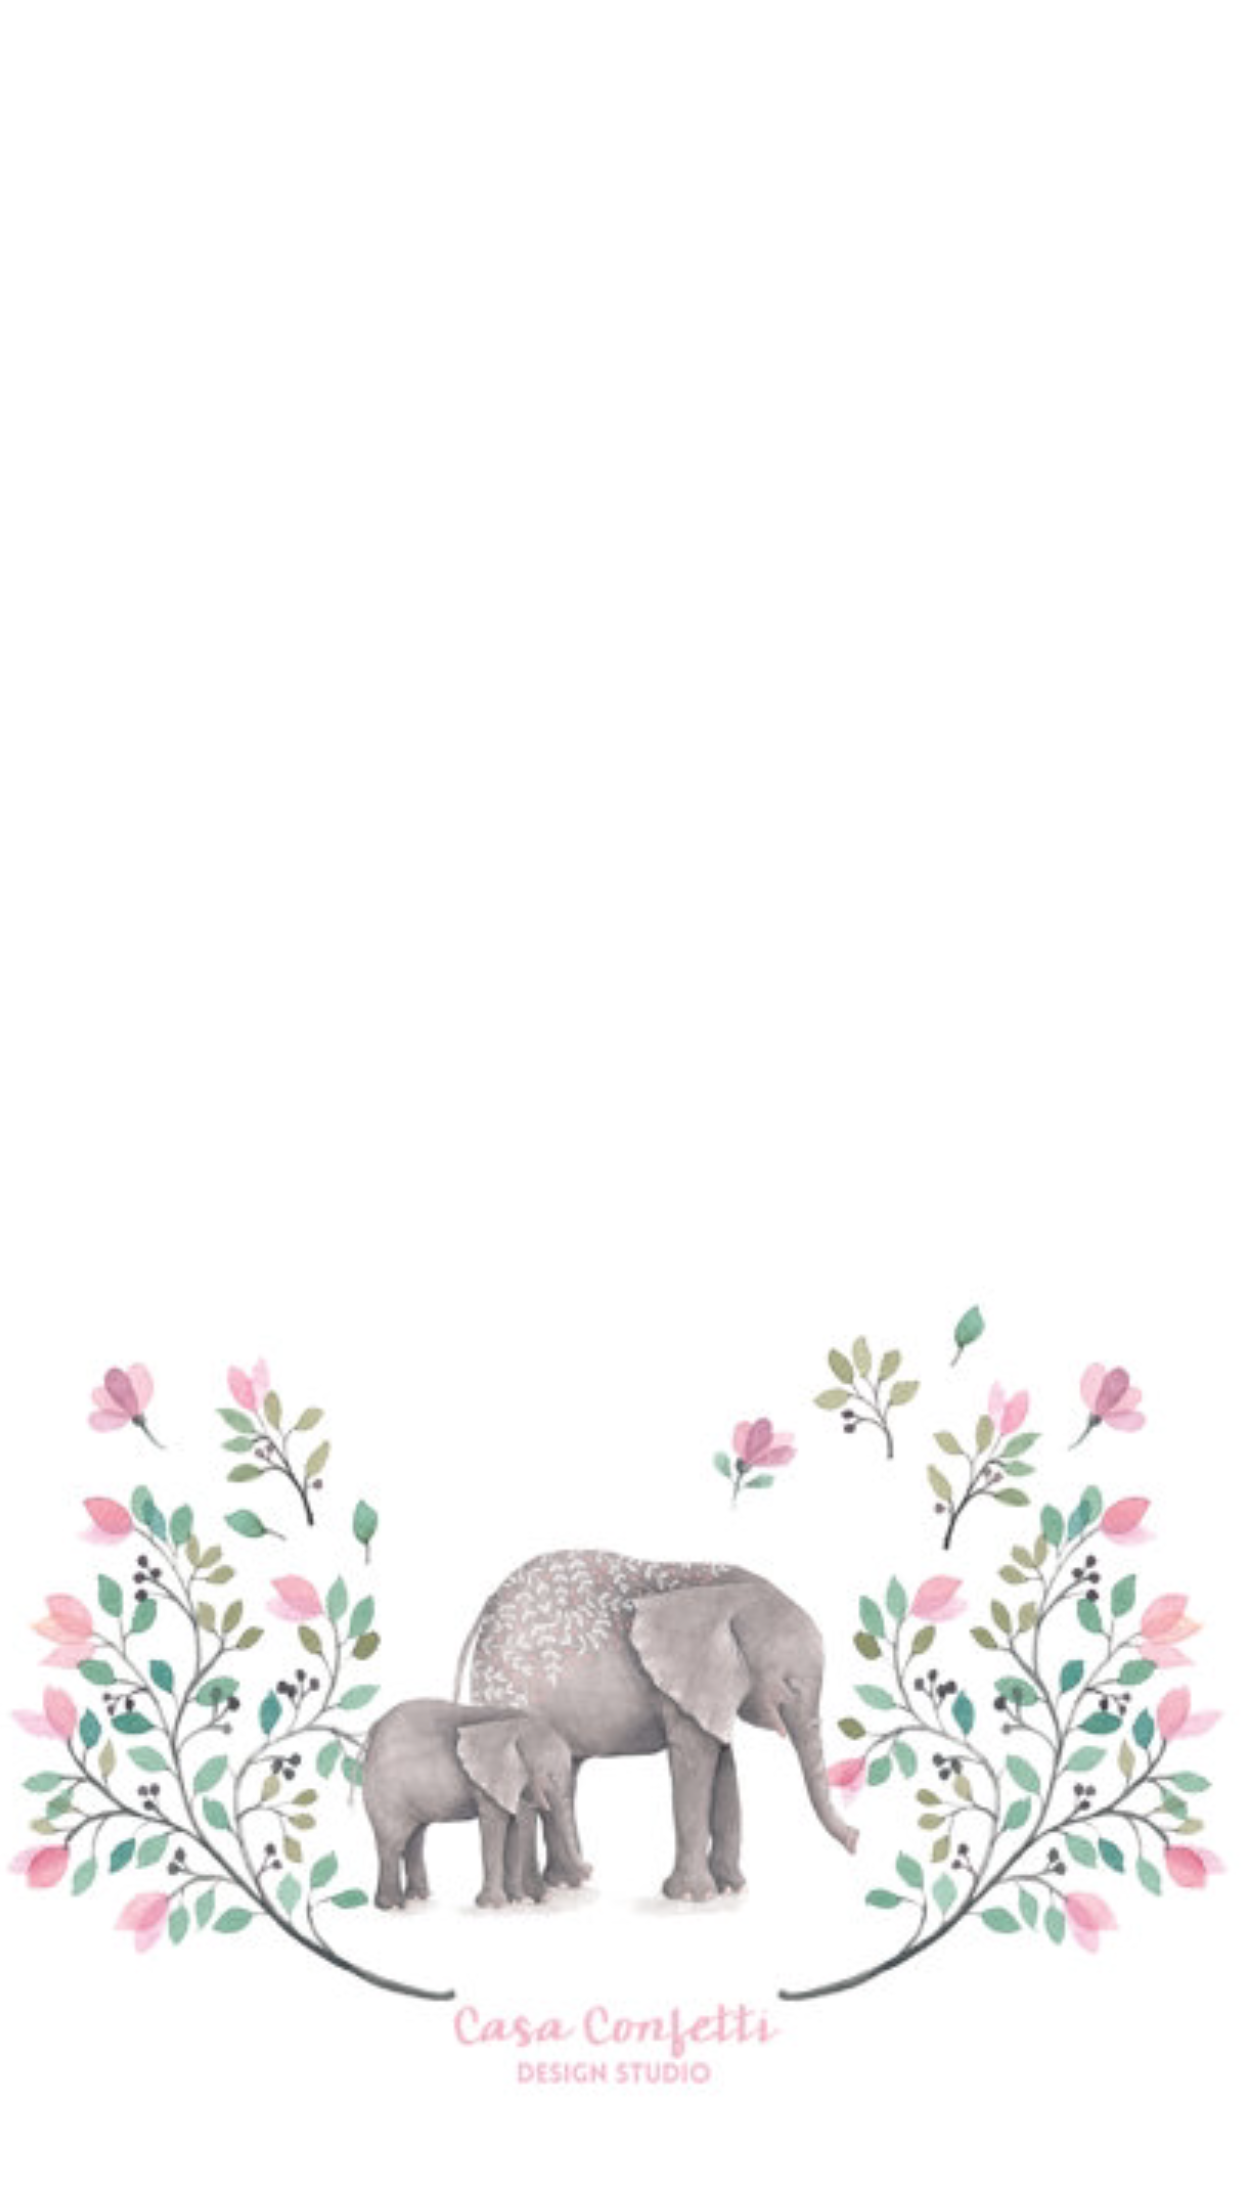 Pin By Gralyne Watkins On Wallpaper Animal In 2019